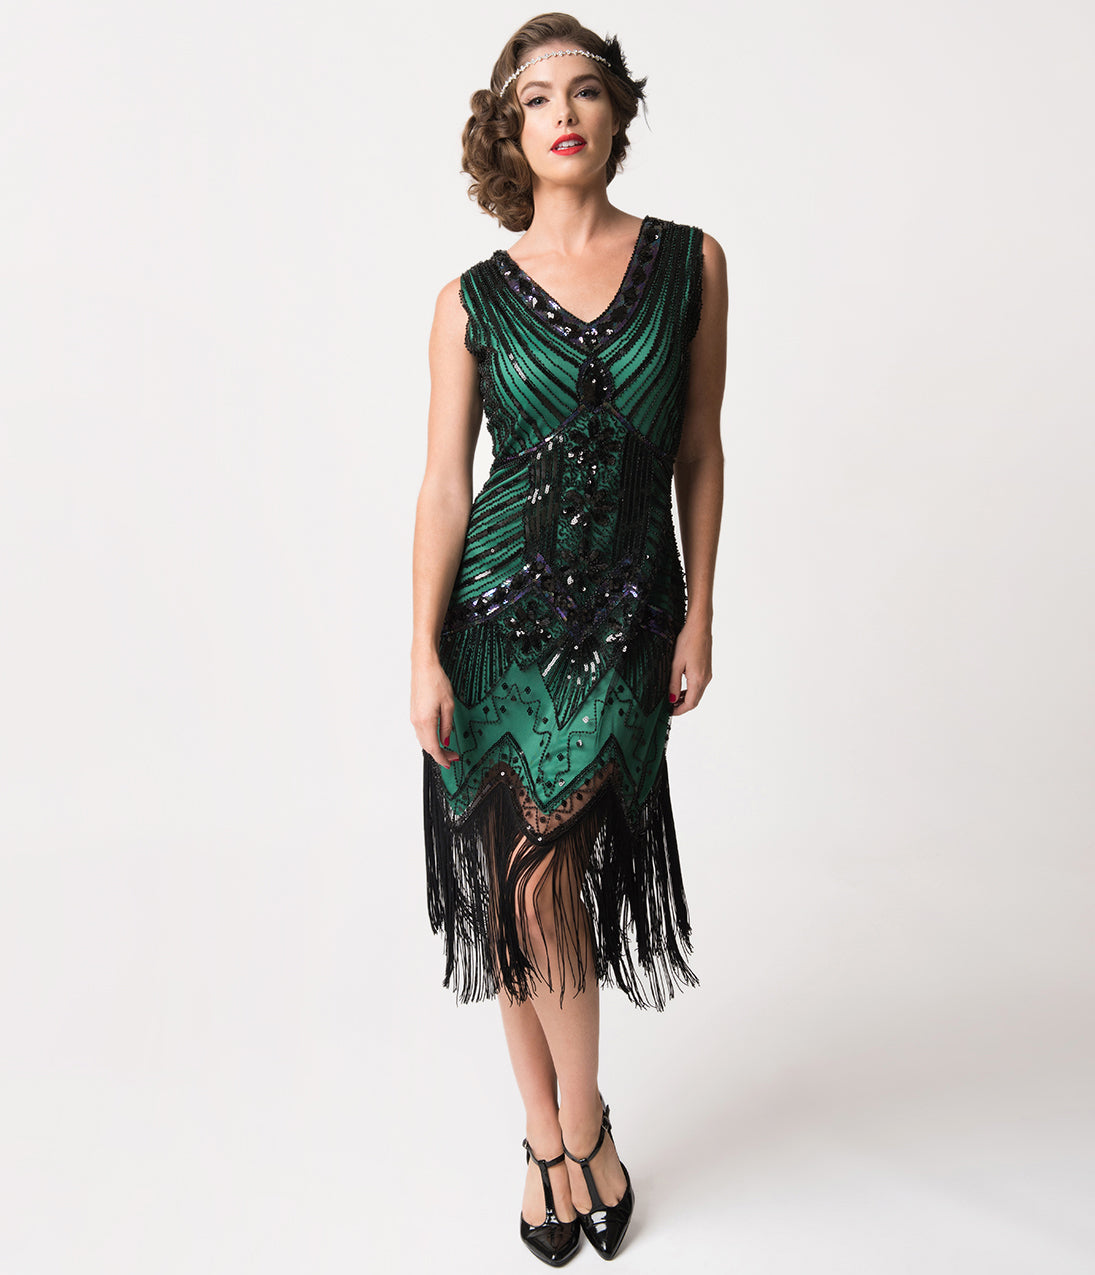 1920s Evening Dresses & Formal Gowns Unique Vintage 1920S Deco Green  Black Sequin Veronique Fringe Flapper Dress $98.00 AT vintagedancer.com